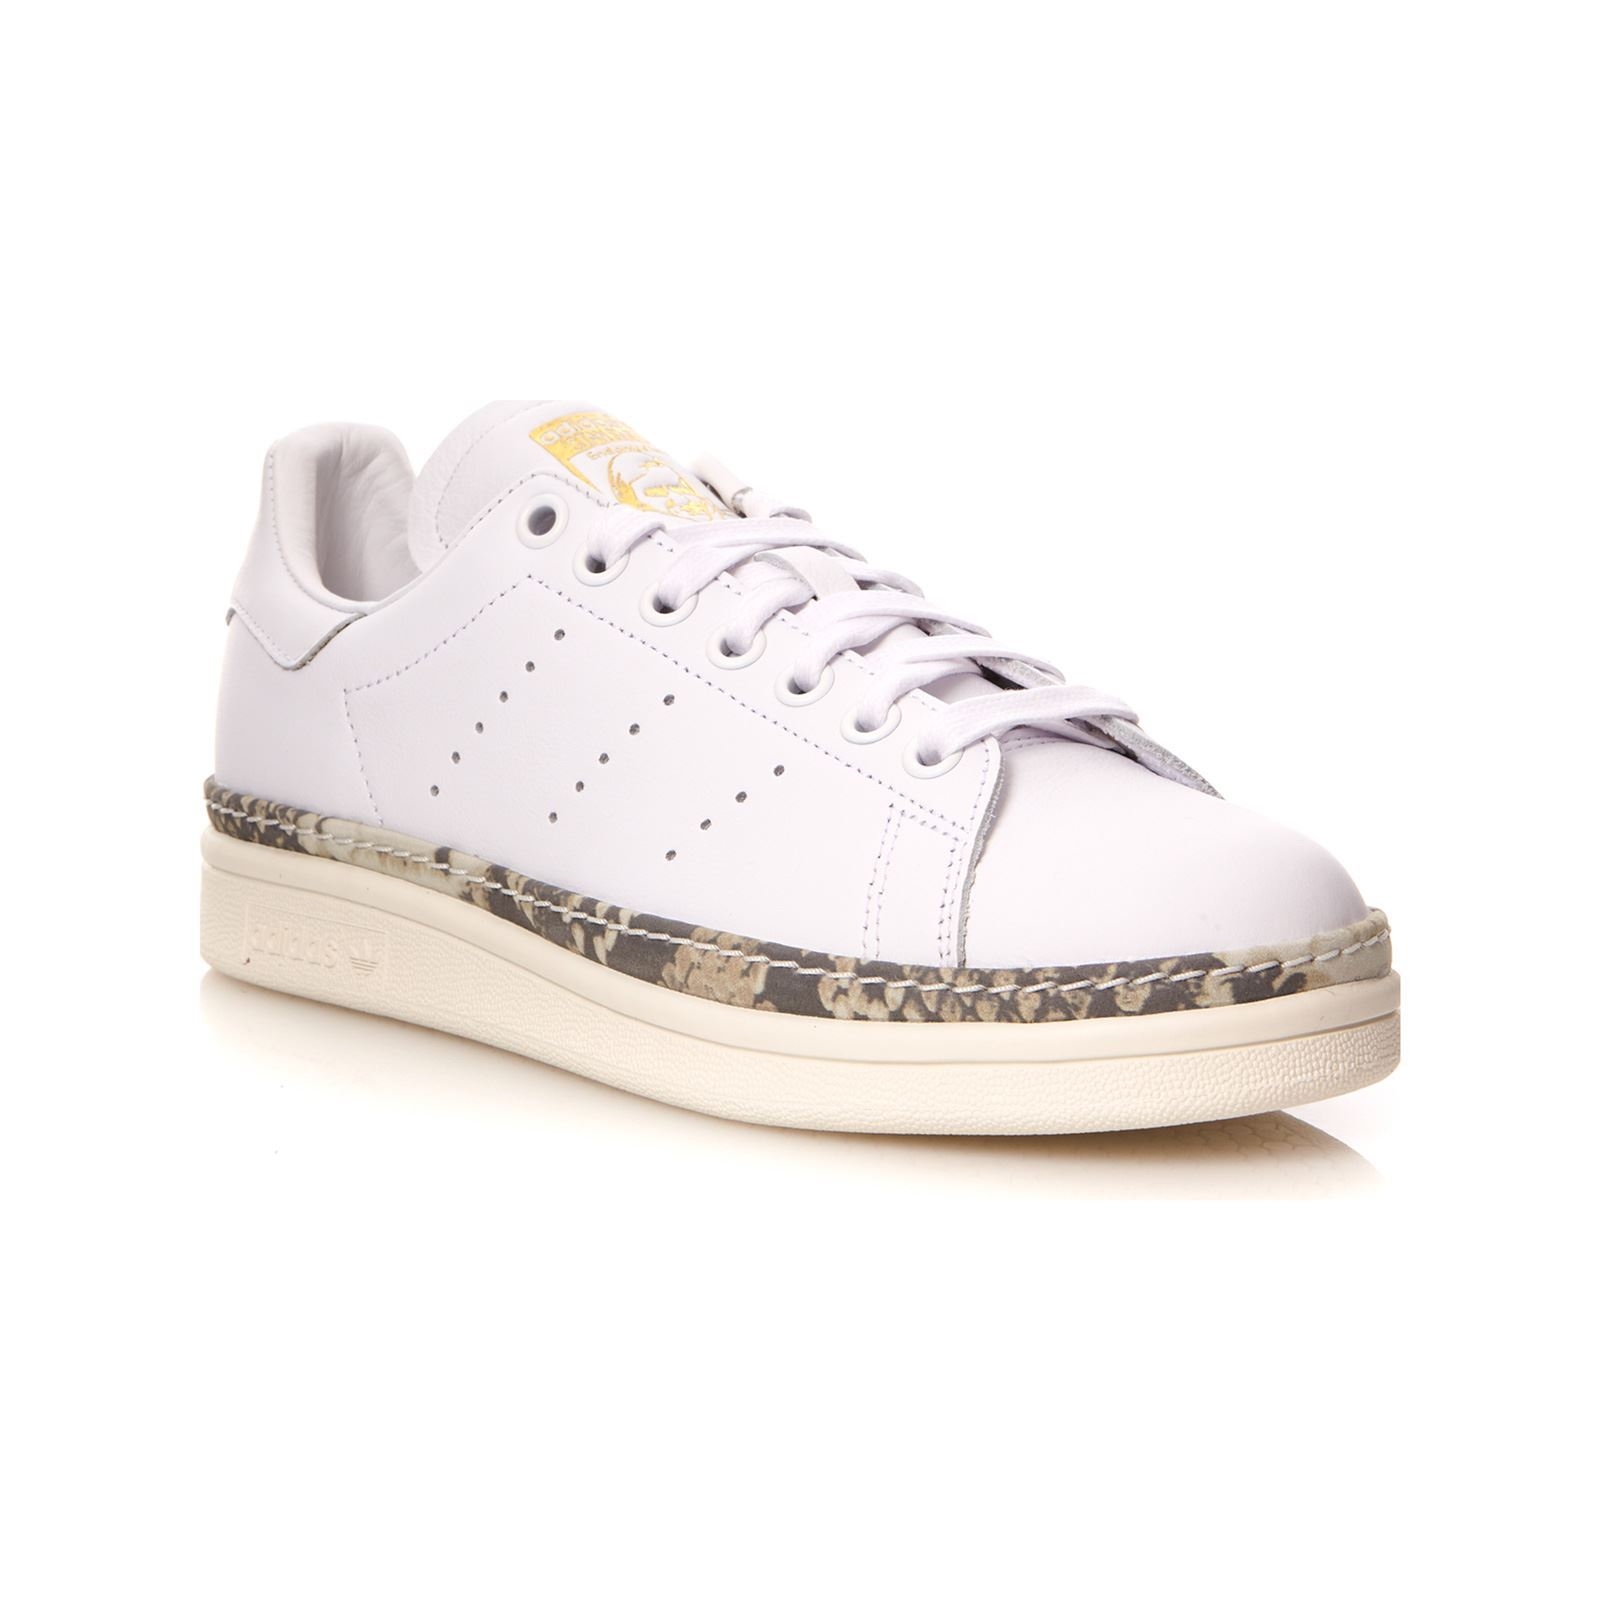 acheter mieux Achat/Vente gros remise Stan Smith New Bold - Baskets en cuir - blanc